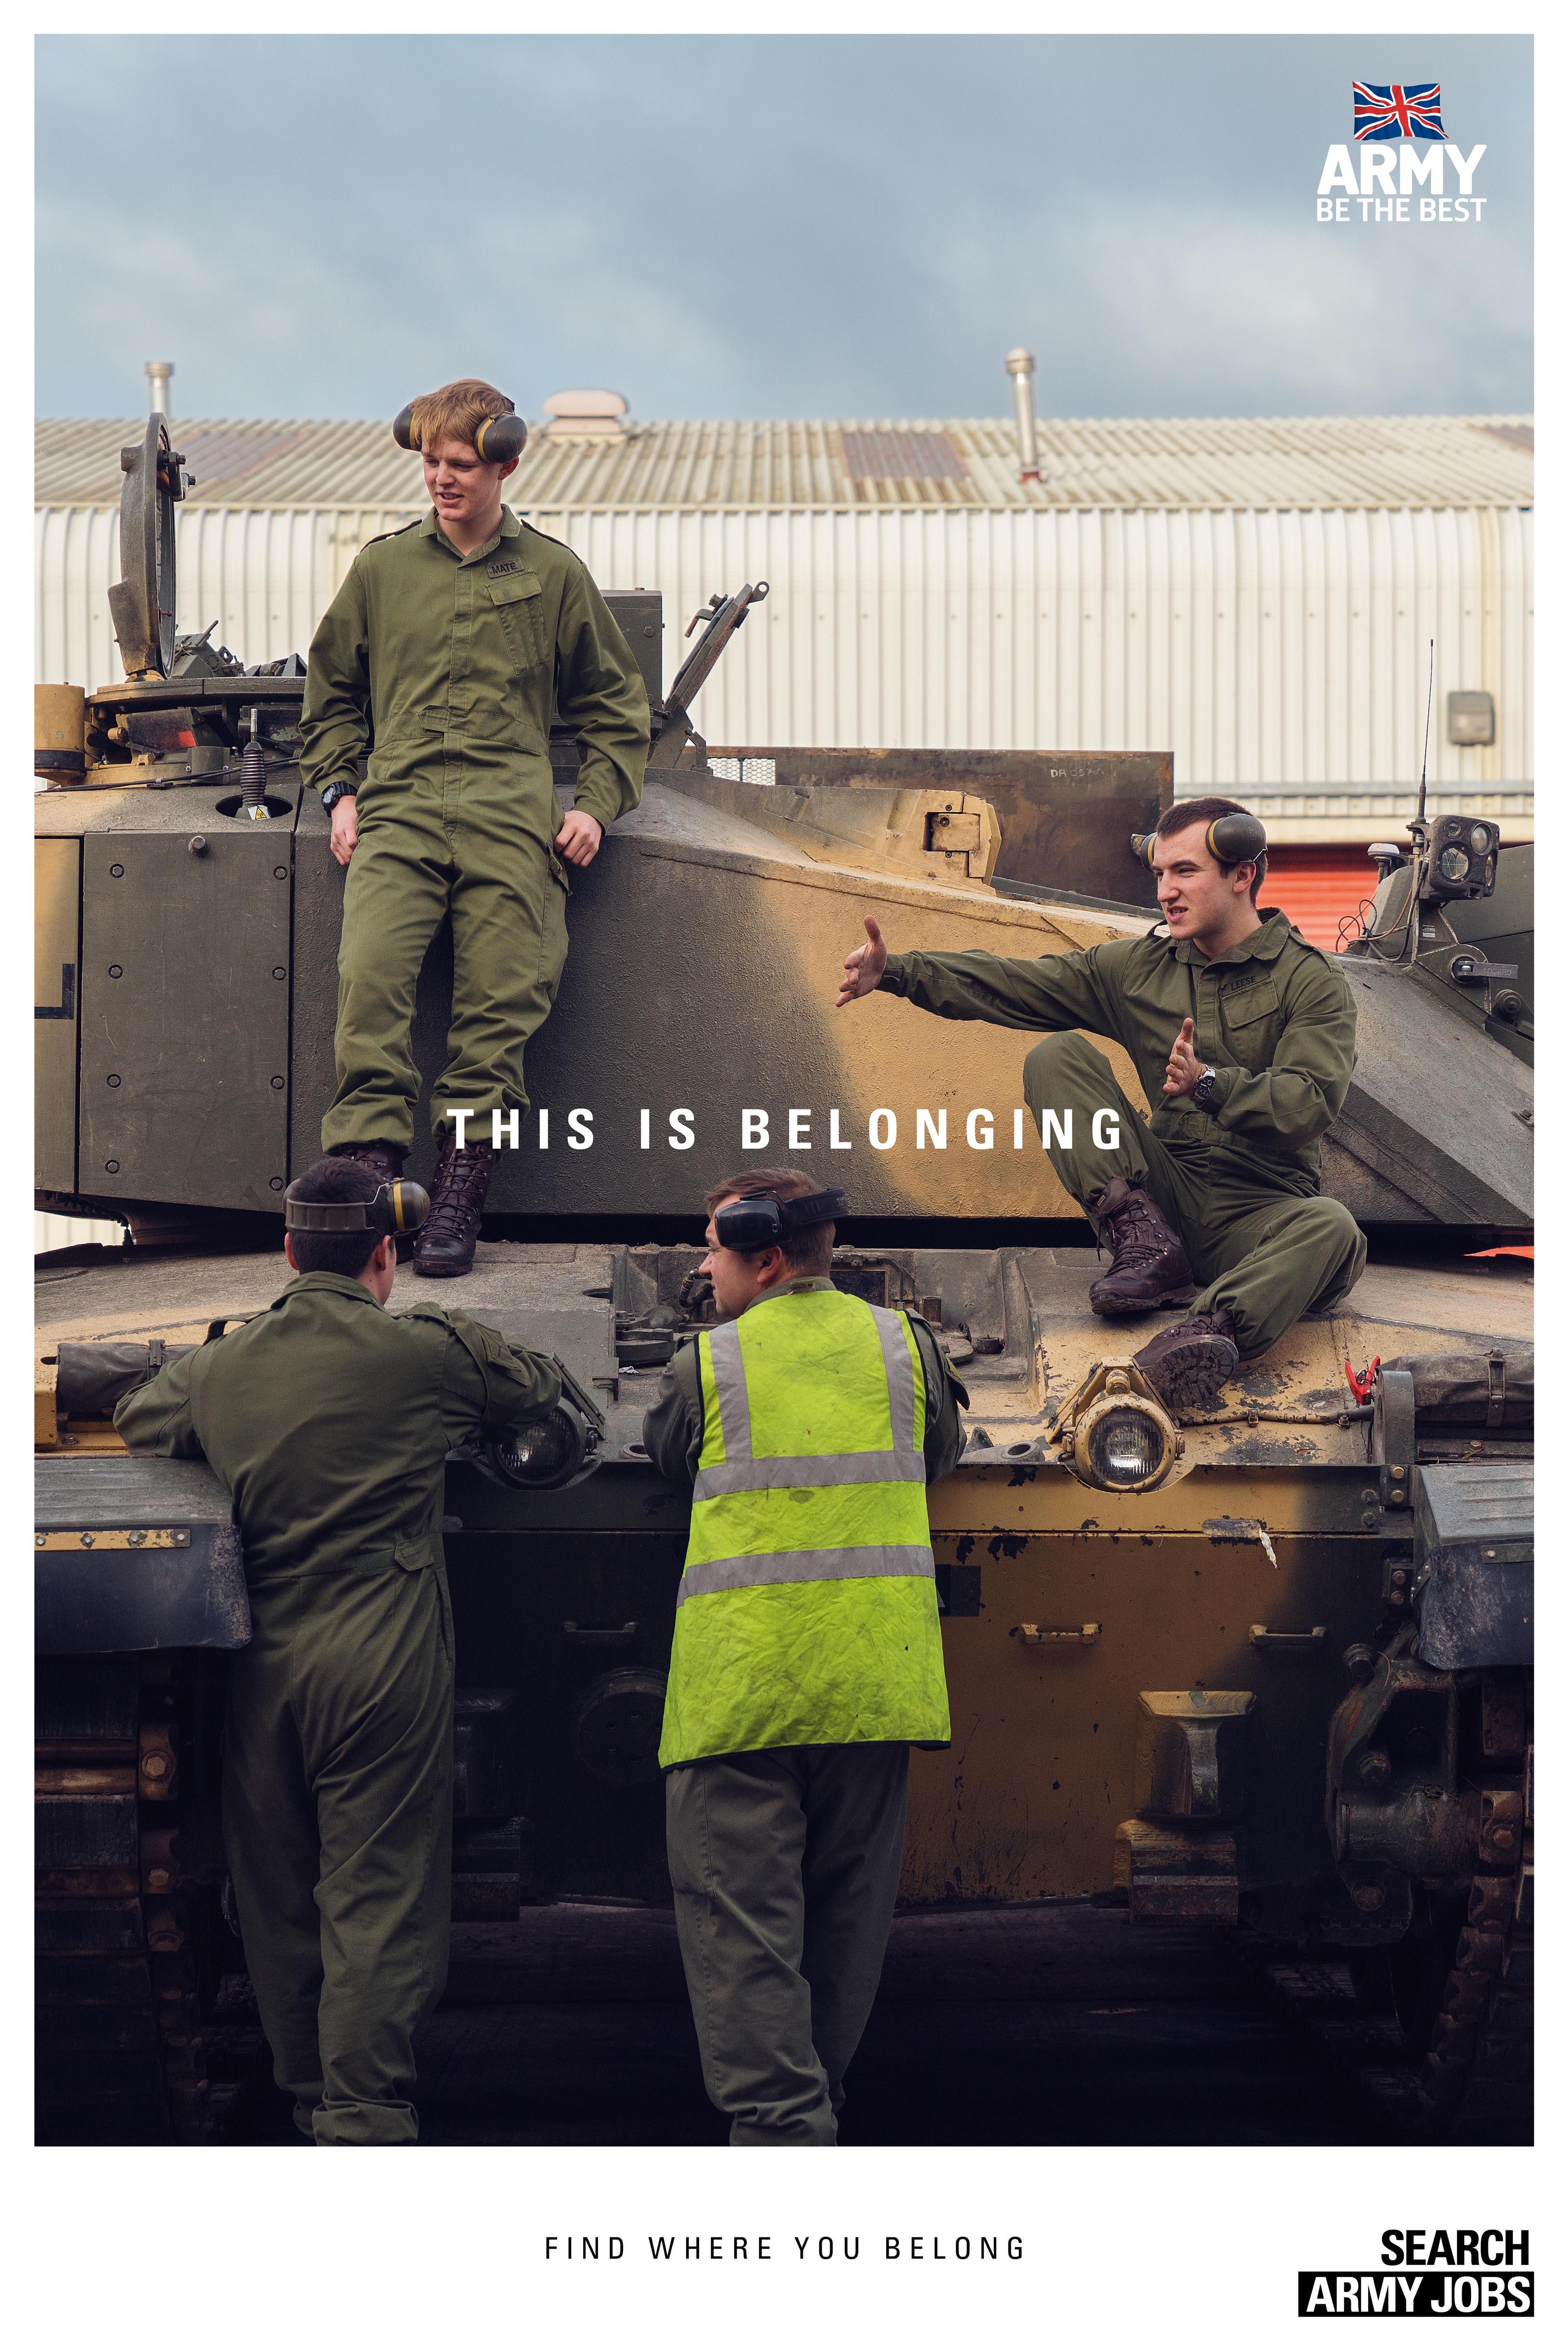 Army Outdoor Ad - This is belonging, 2